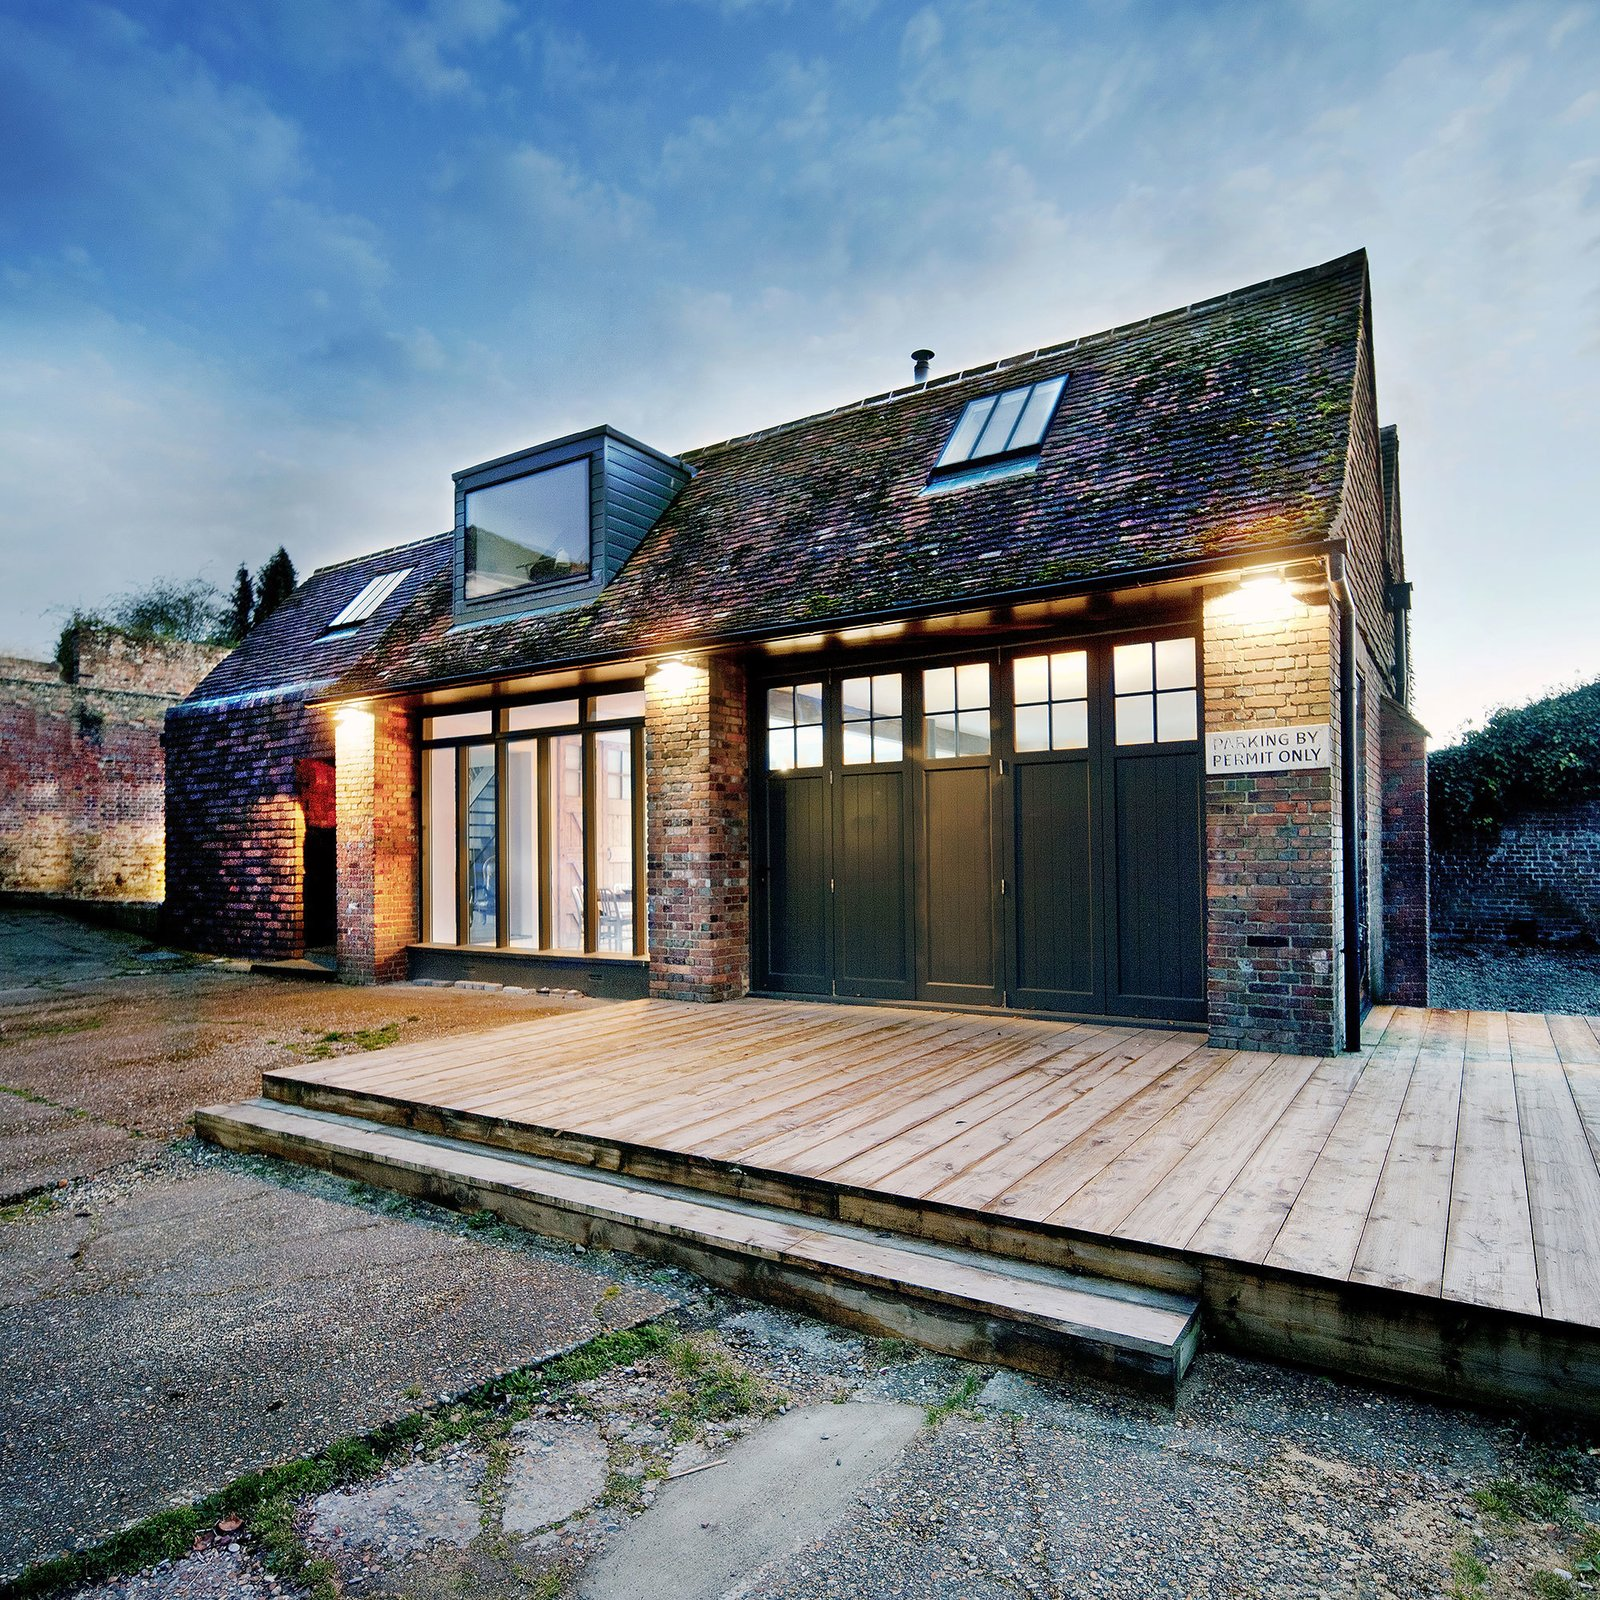 © Vojteck Ketz courtesy of Marta Nowicka & Co. Tagged: Exterior, Shingles Roof Material, Brick Siding Material, House, and Gable RoofLine.  Photo 1 of 19 in 10 Dwell-Approved, New-Old Homes in the UK from Rescue & Revival